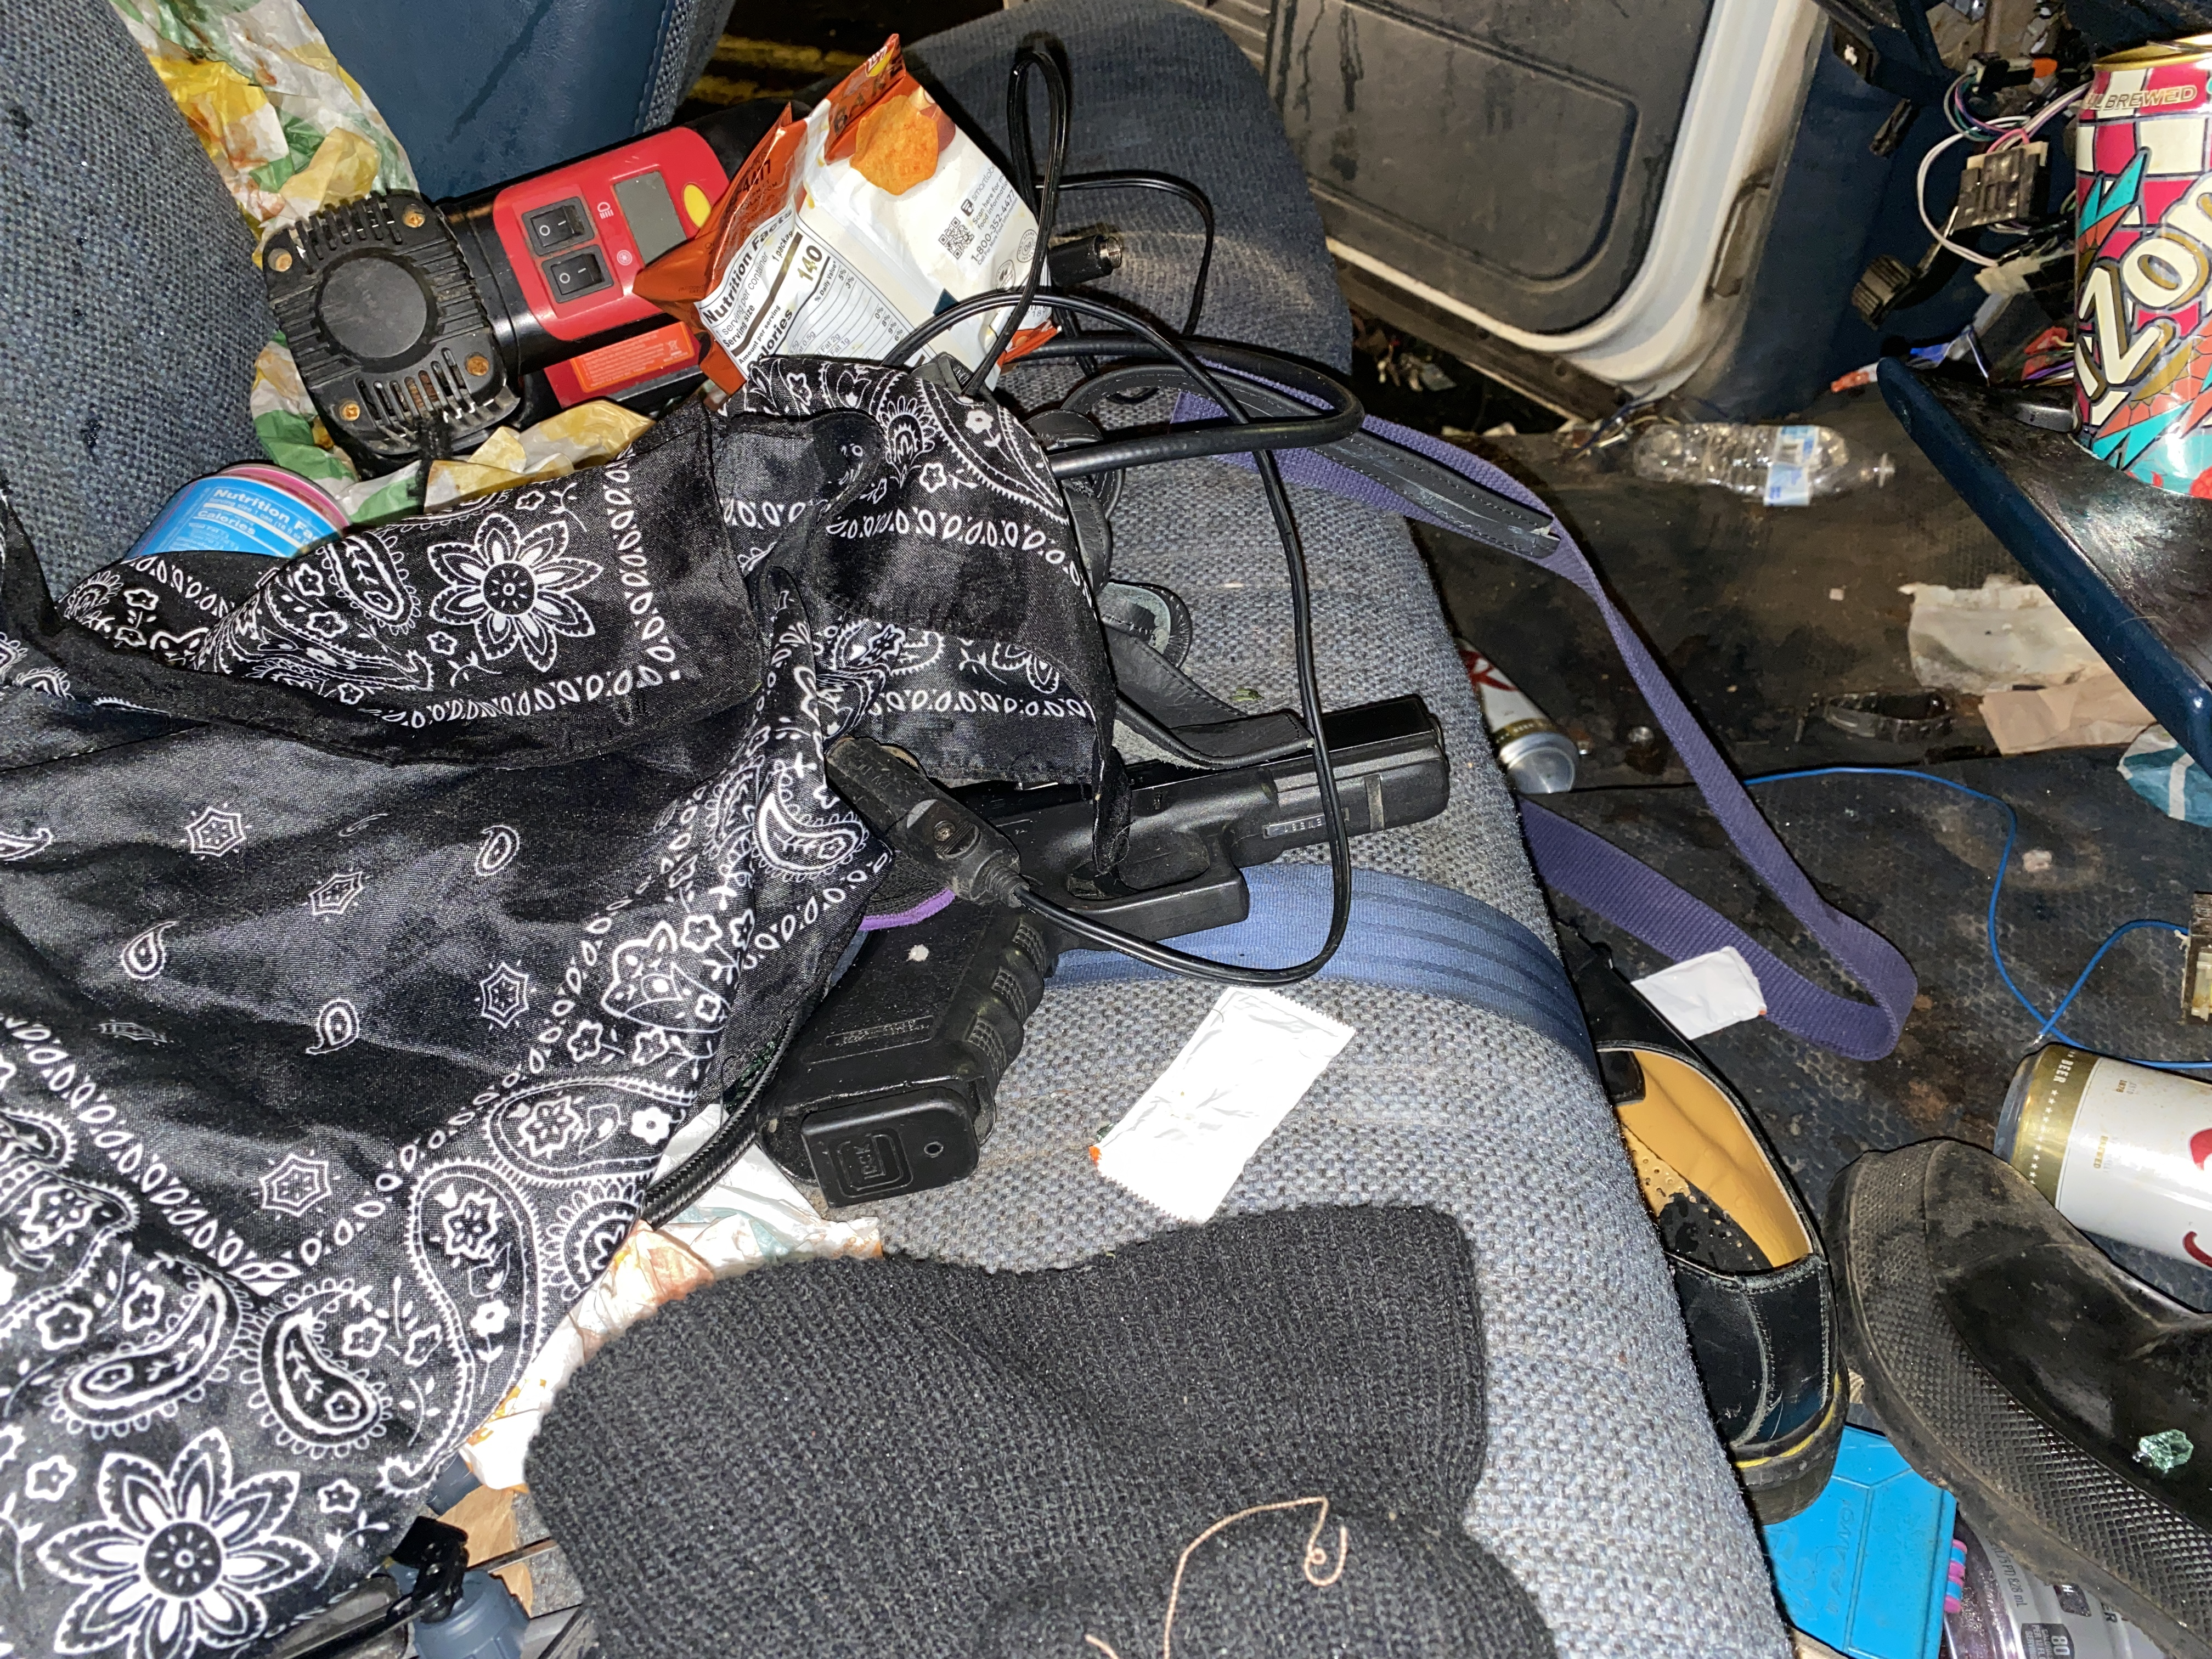 One of two guns police said they found in the suspect's vehicle. (Photo: Portland Police Bureau)